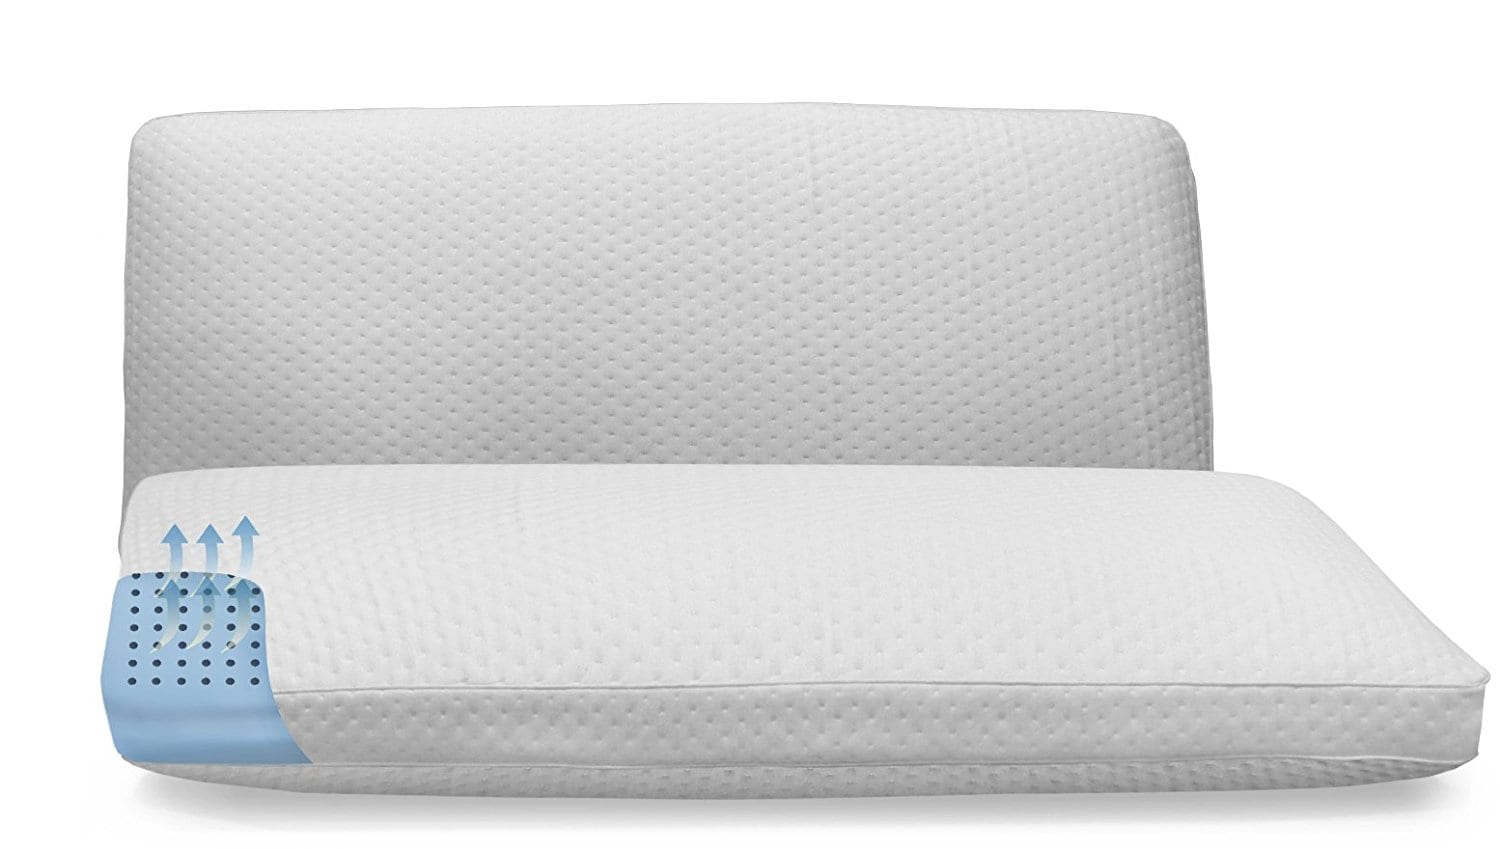 Sensorpedic Luxury Pillow With Ventilated Icool Technology